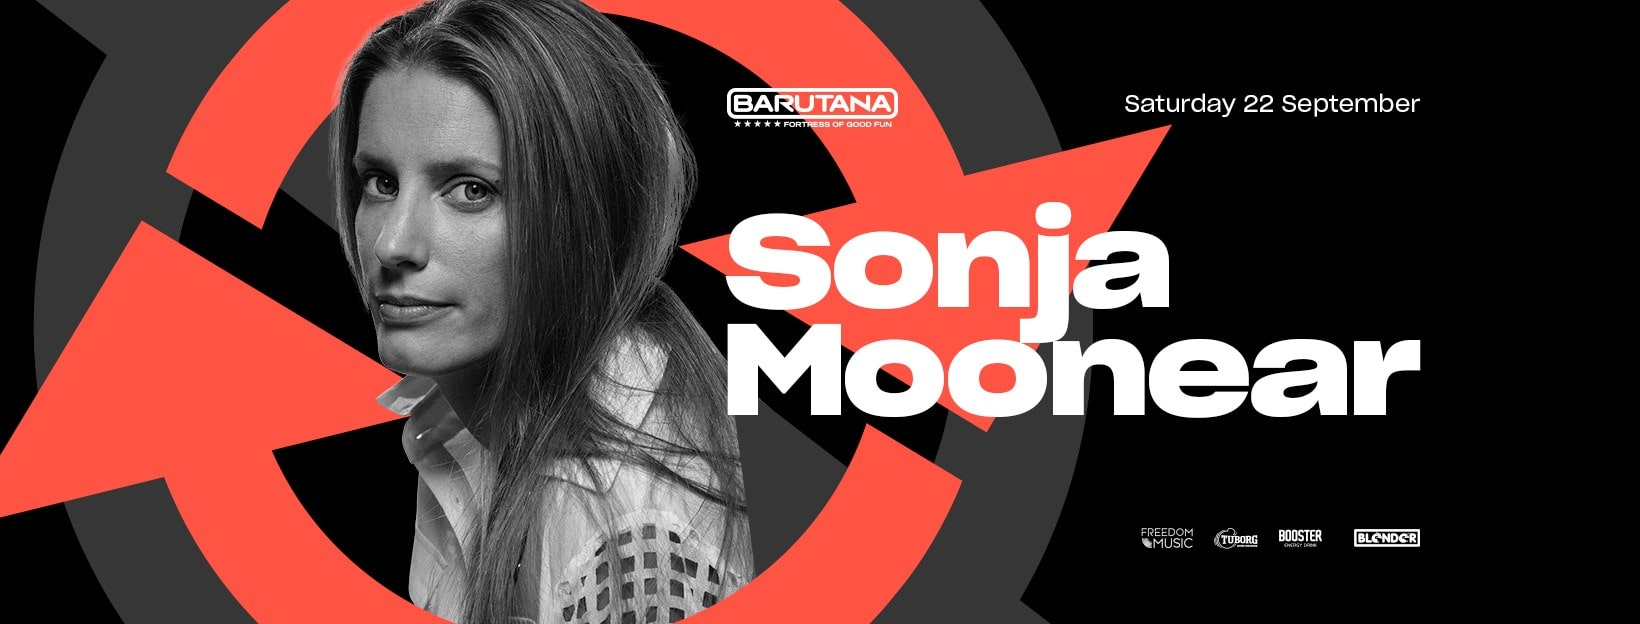 2209-sonja-moonear-fb-cover (1)